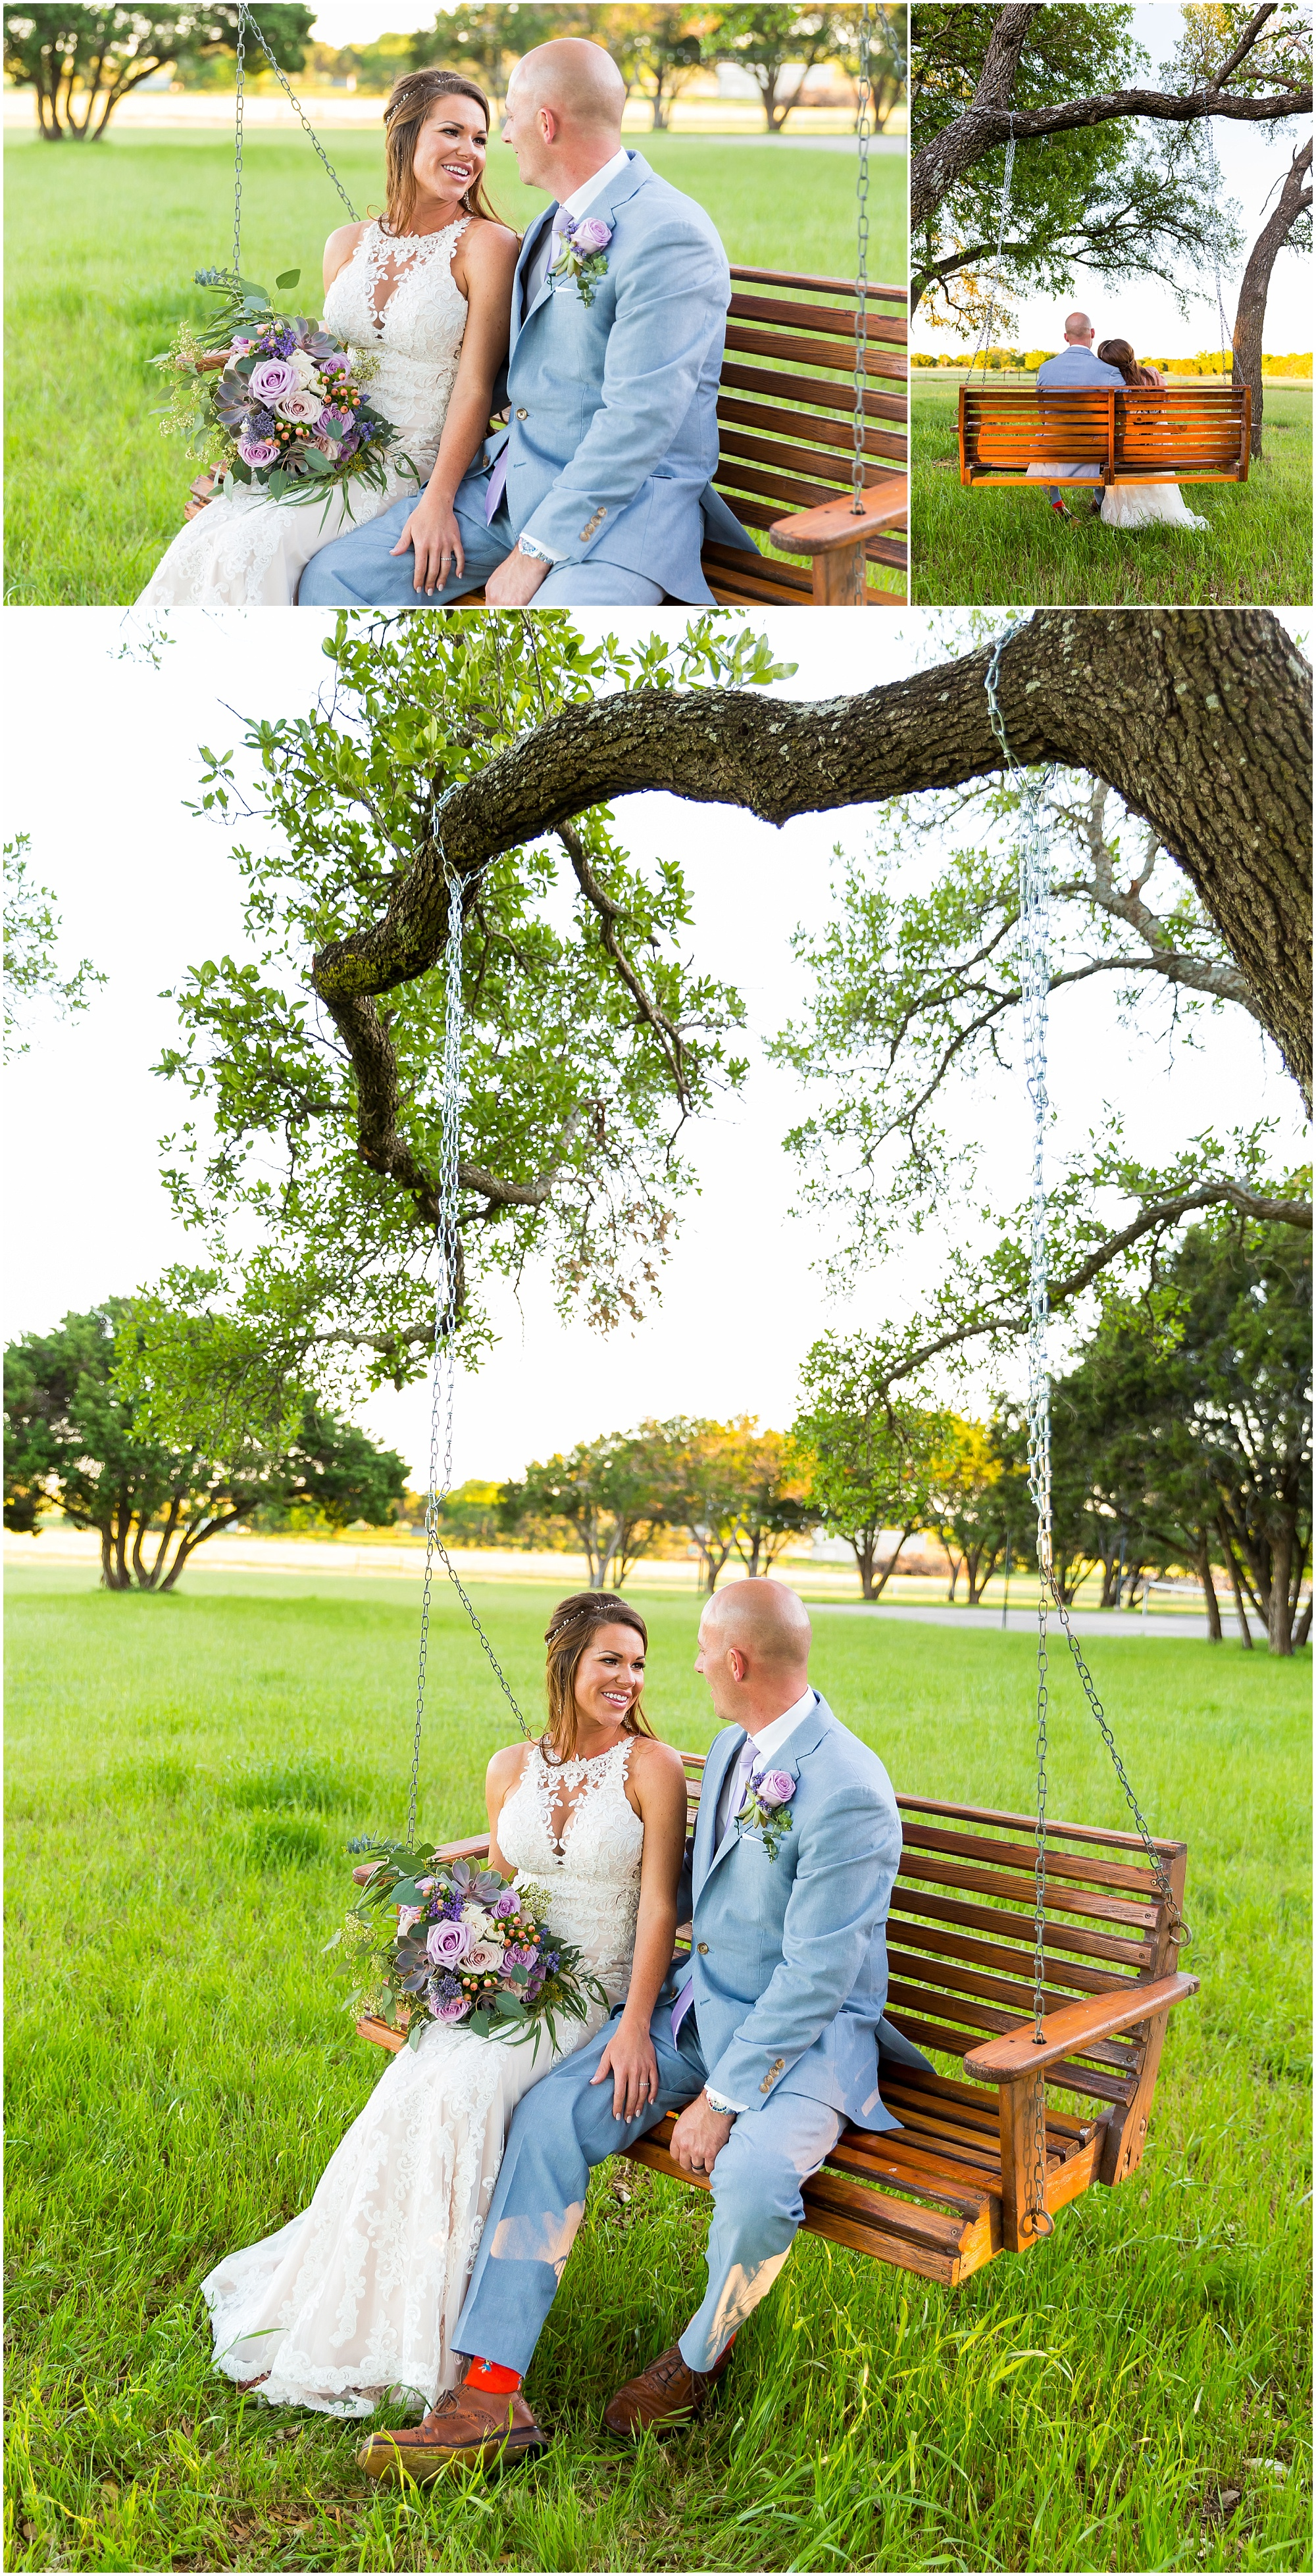 A bride and groom swing on a tree swing in a field on their wedding day at Gathering Oaks Retreat in Crawford, Texas | Jason & Melaina Photography | www.jasonandmelaina.com